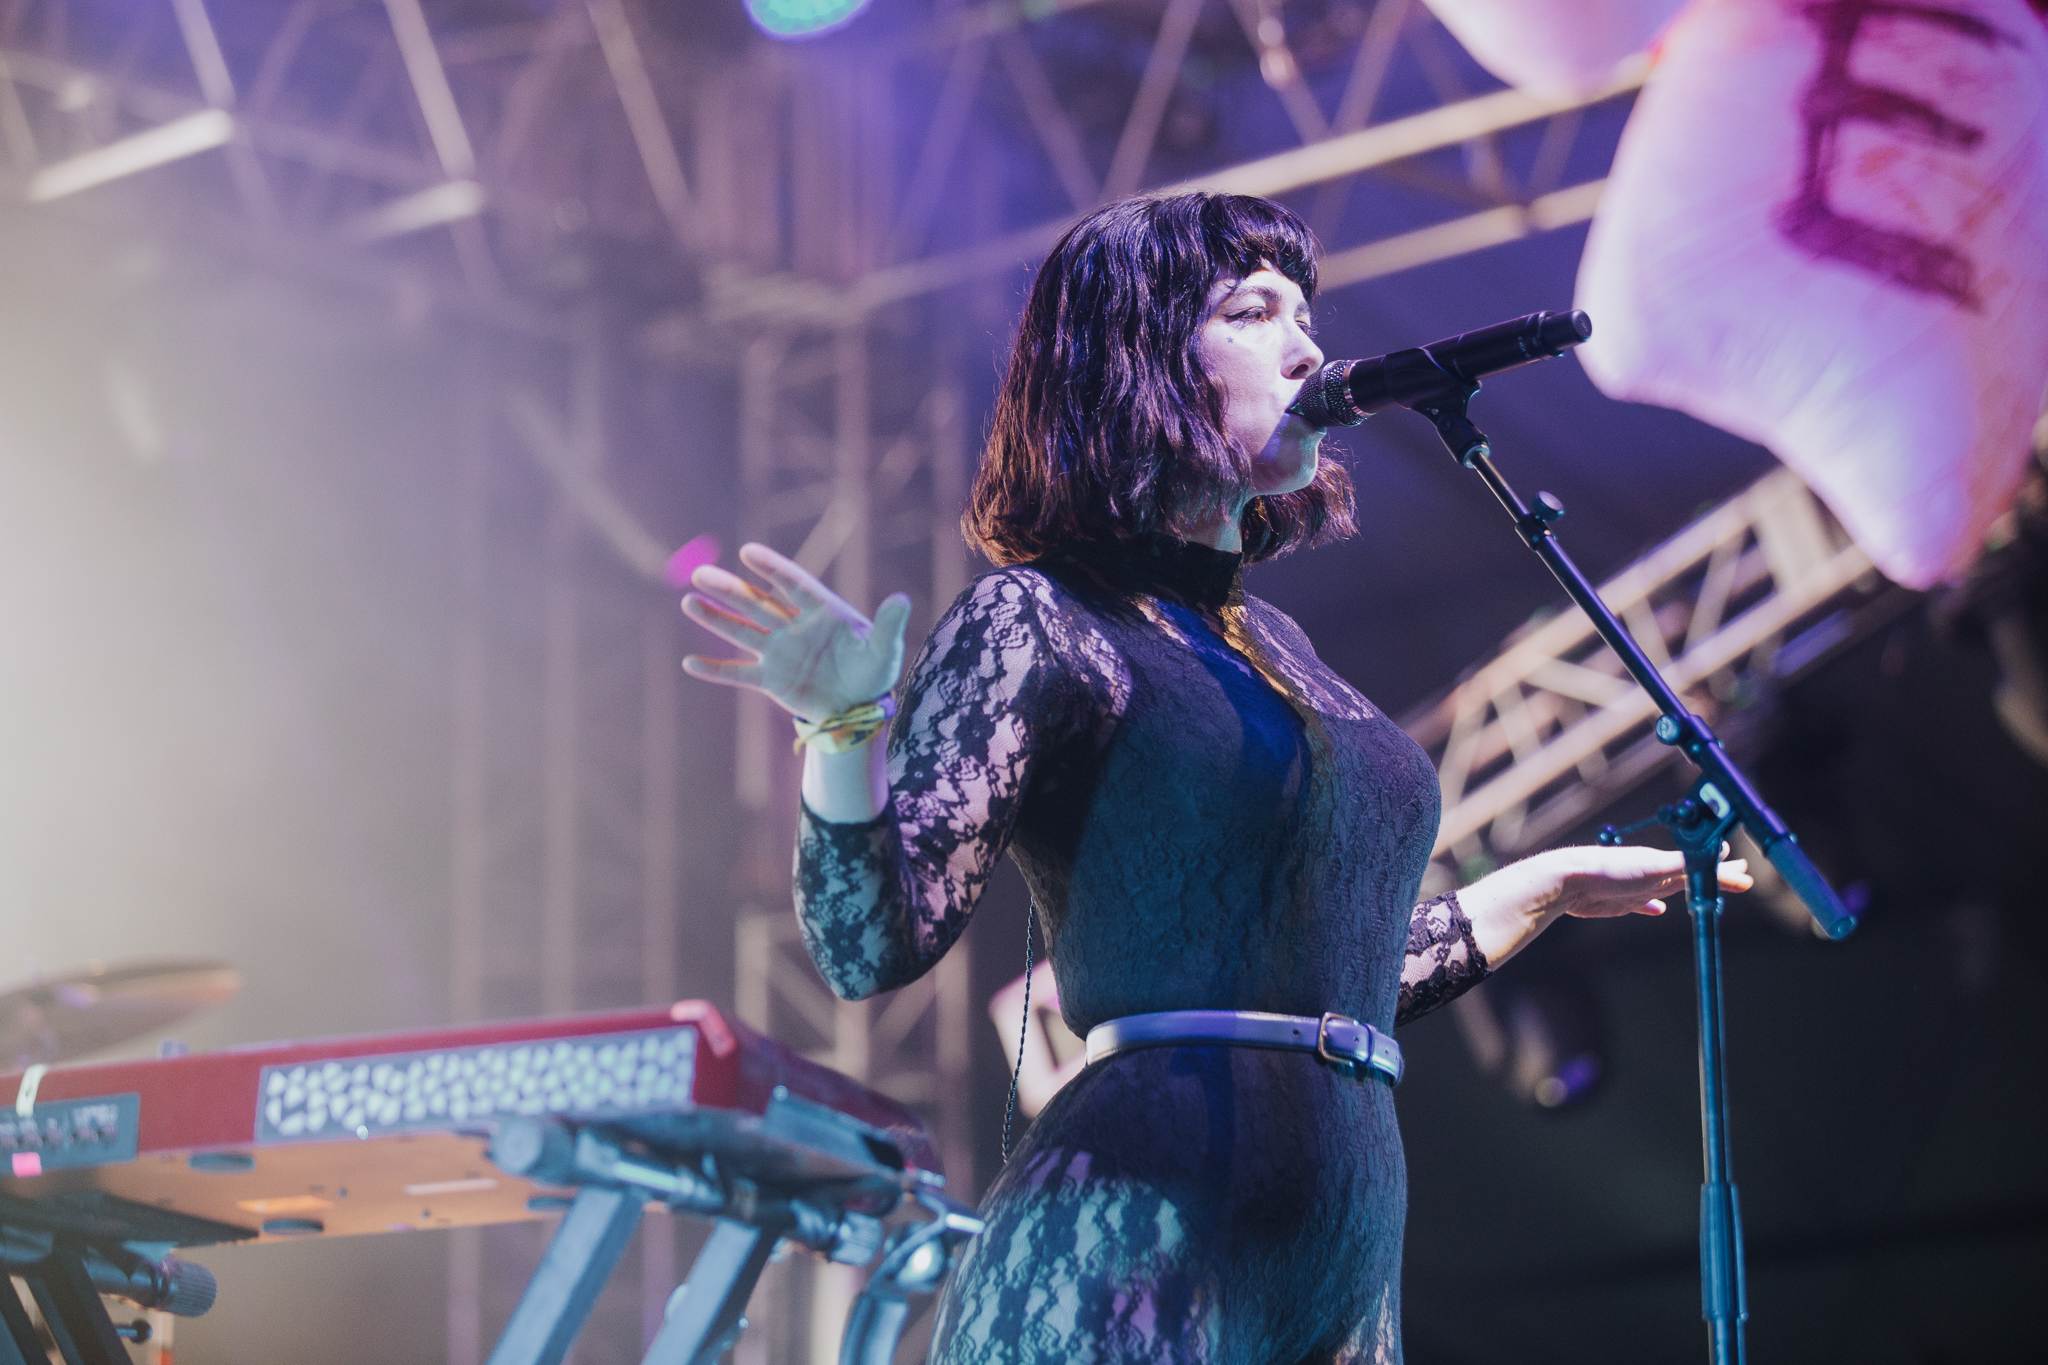 Laura Ord Photography | Austin, TX Concert Photography | Grouplove at Hangout Music Fest in Gulf Shores, AL